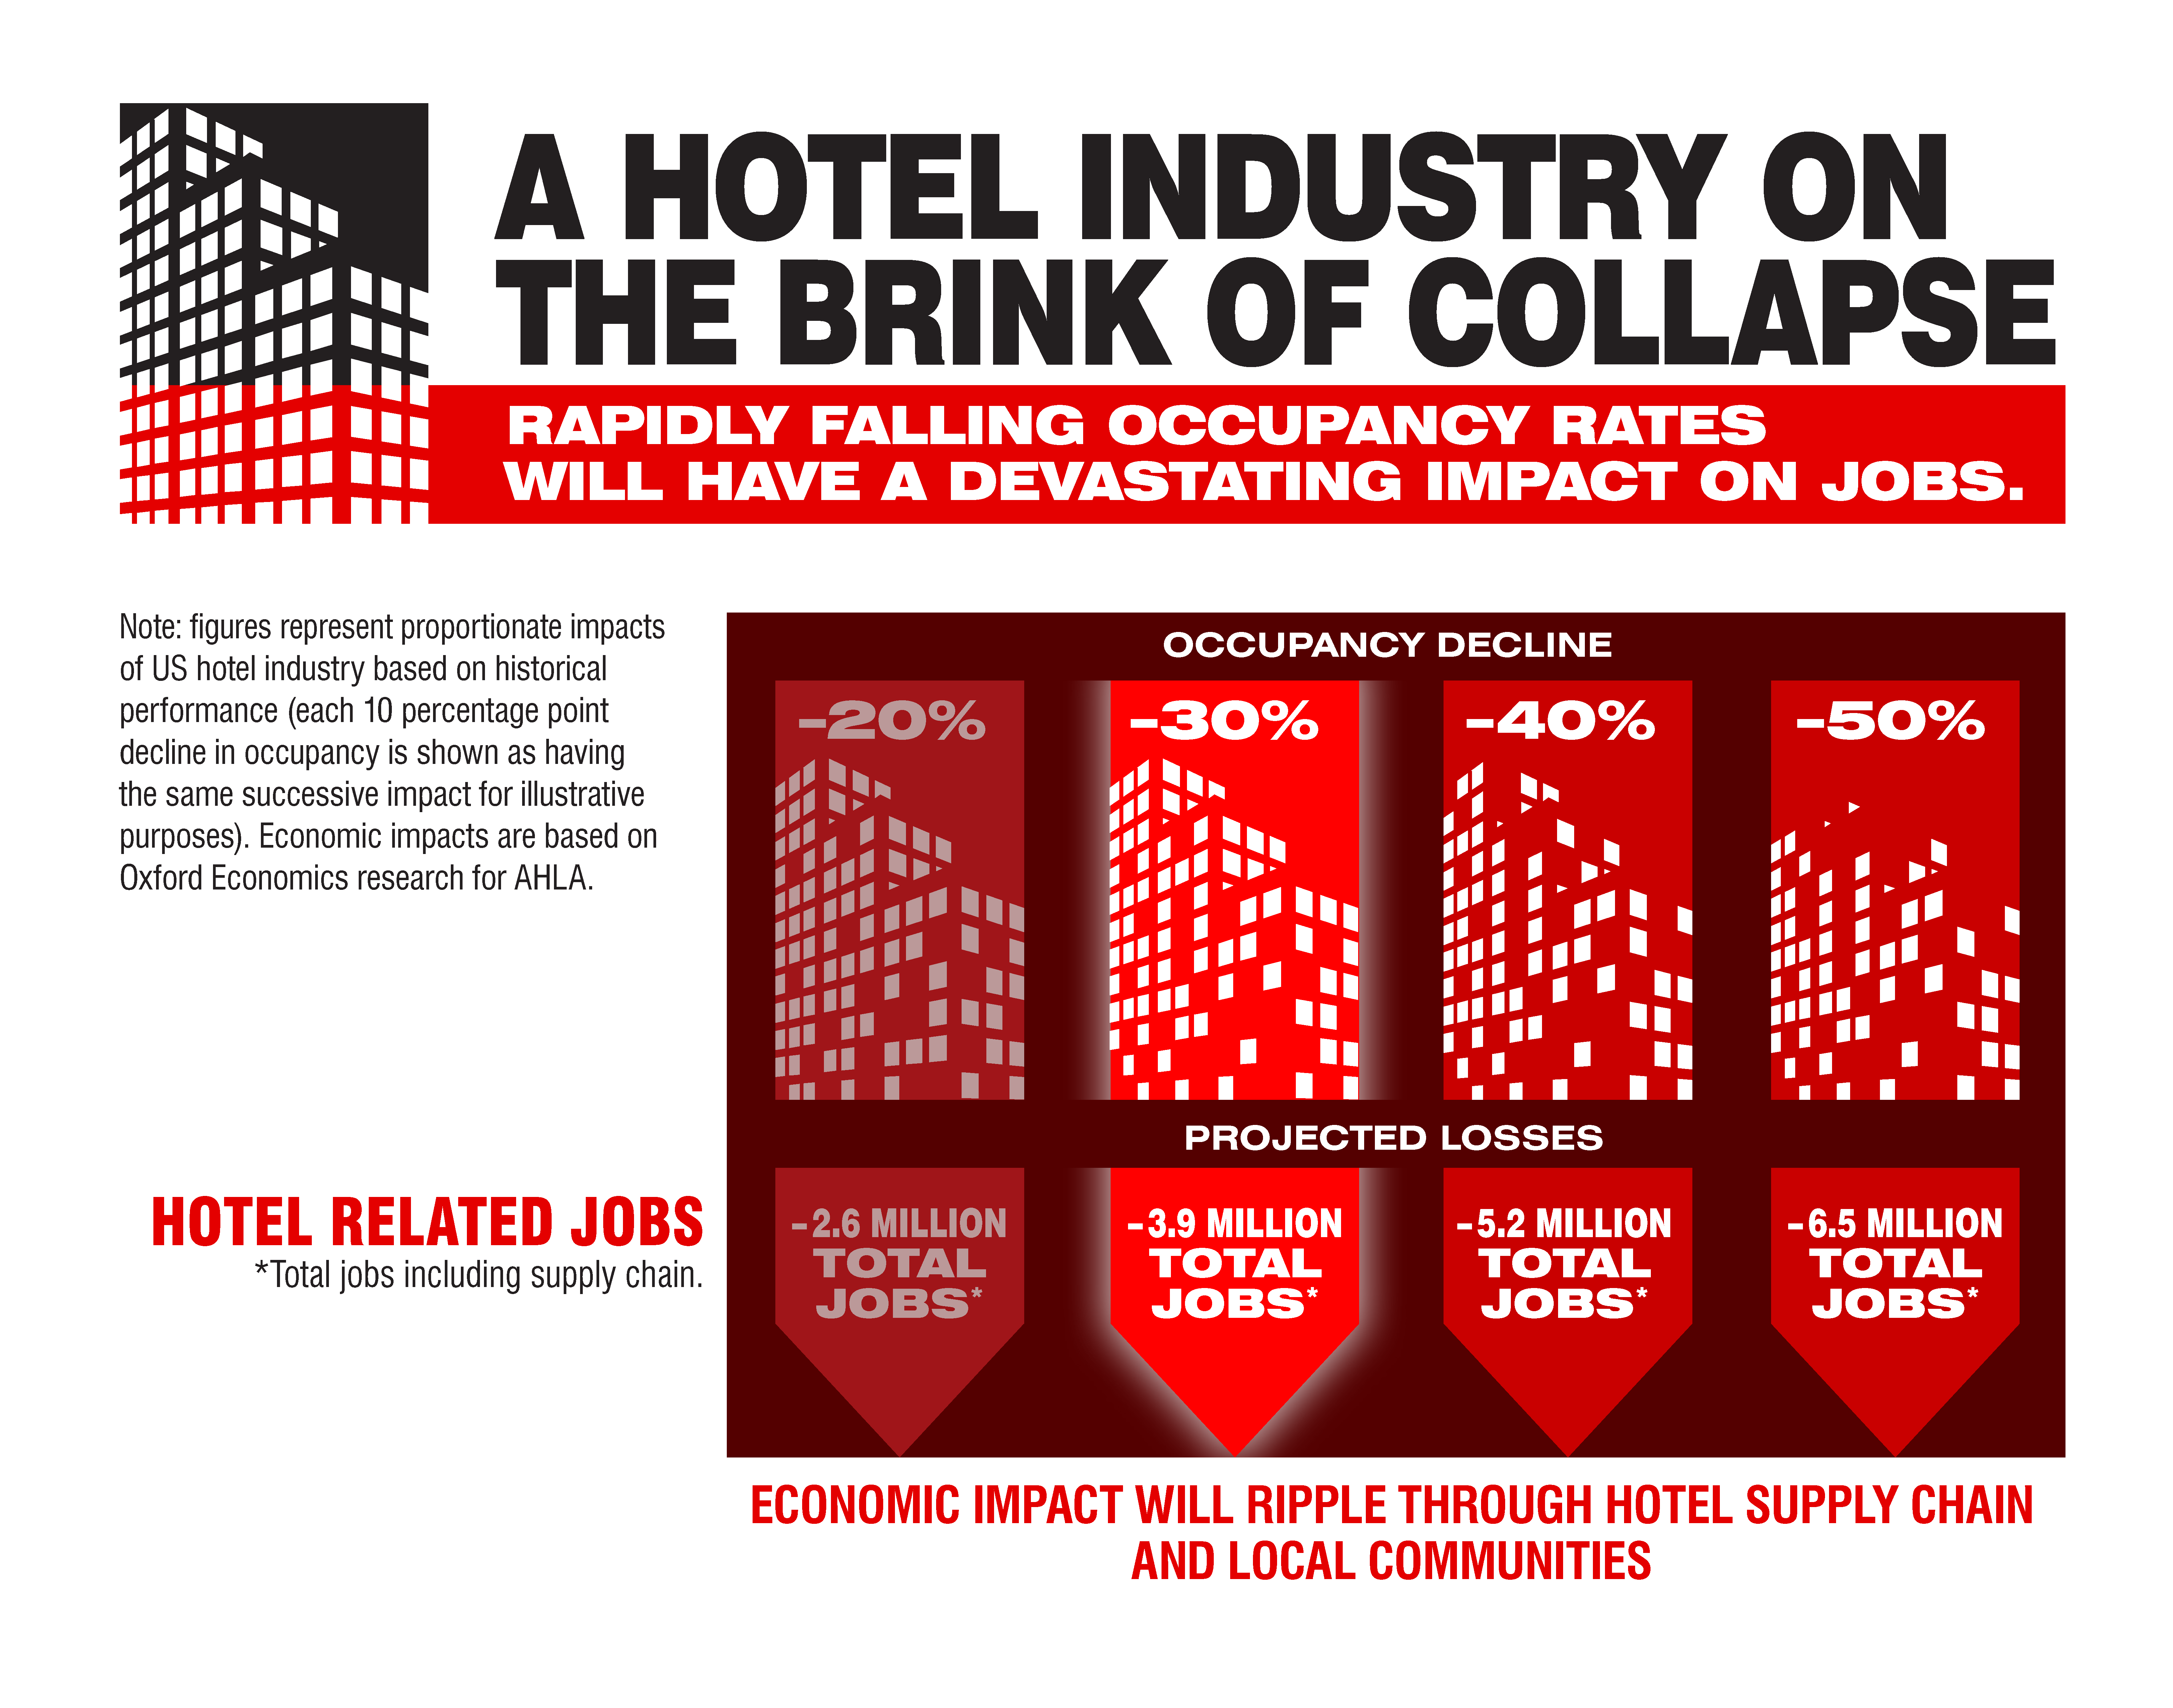 industry on the brink of collapse